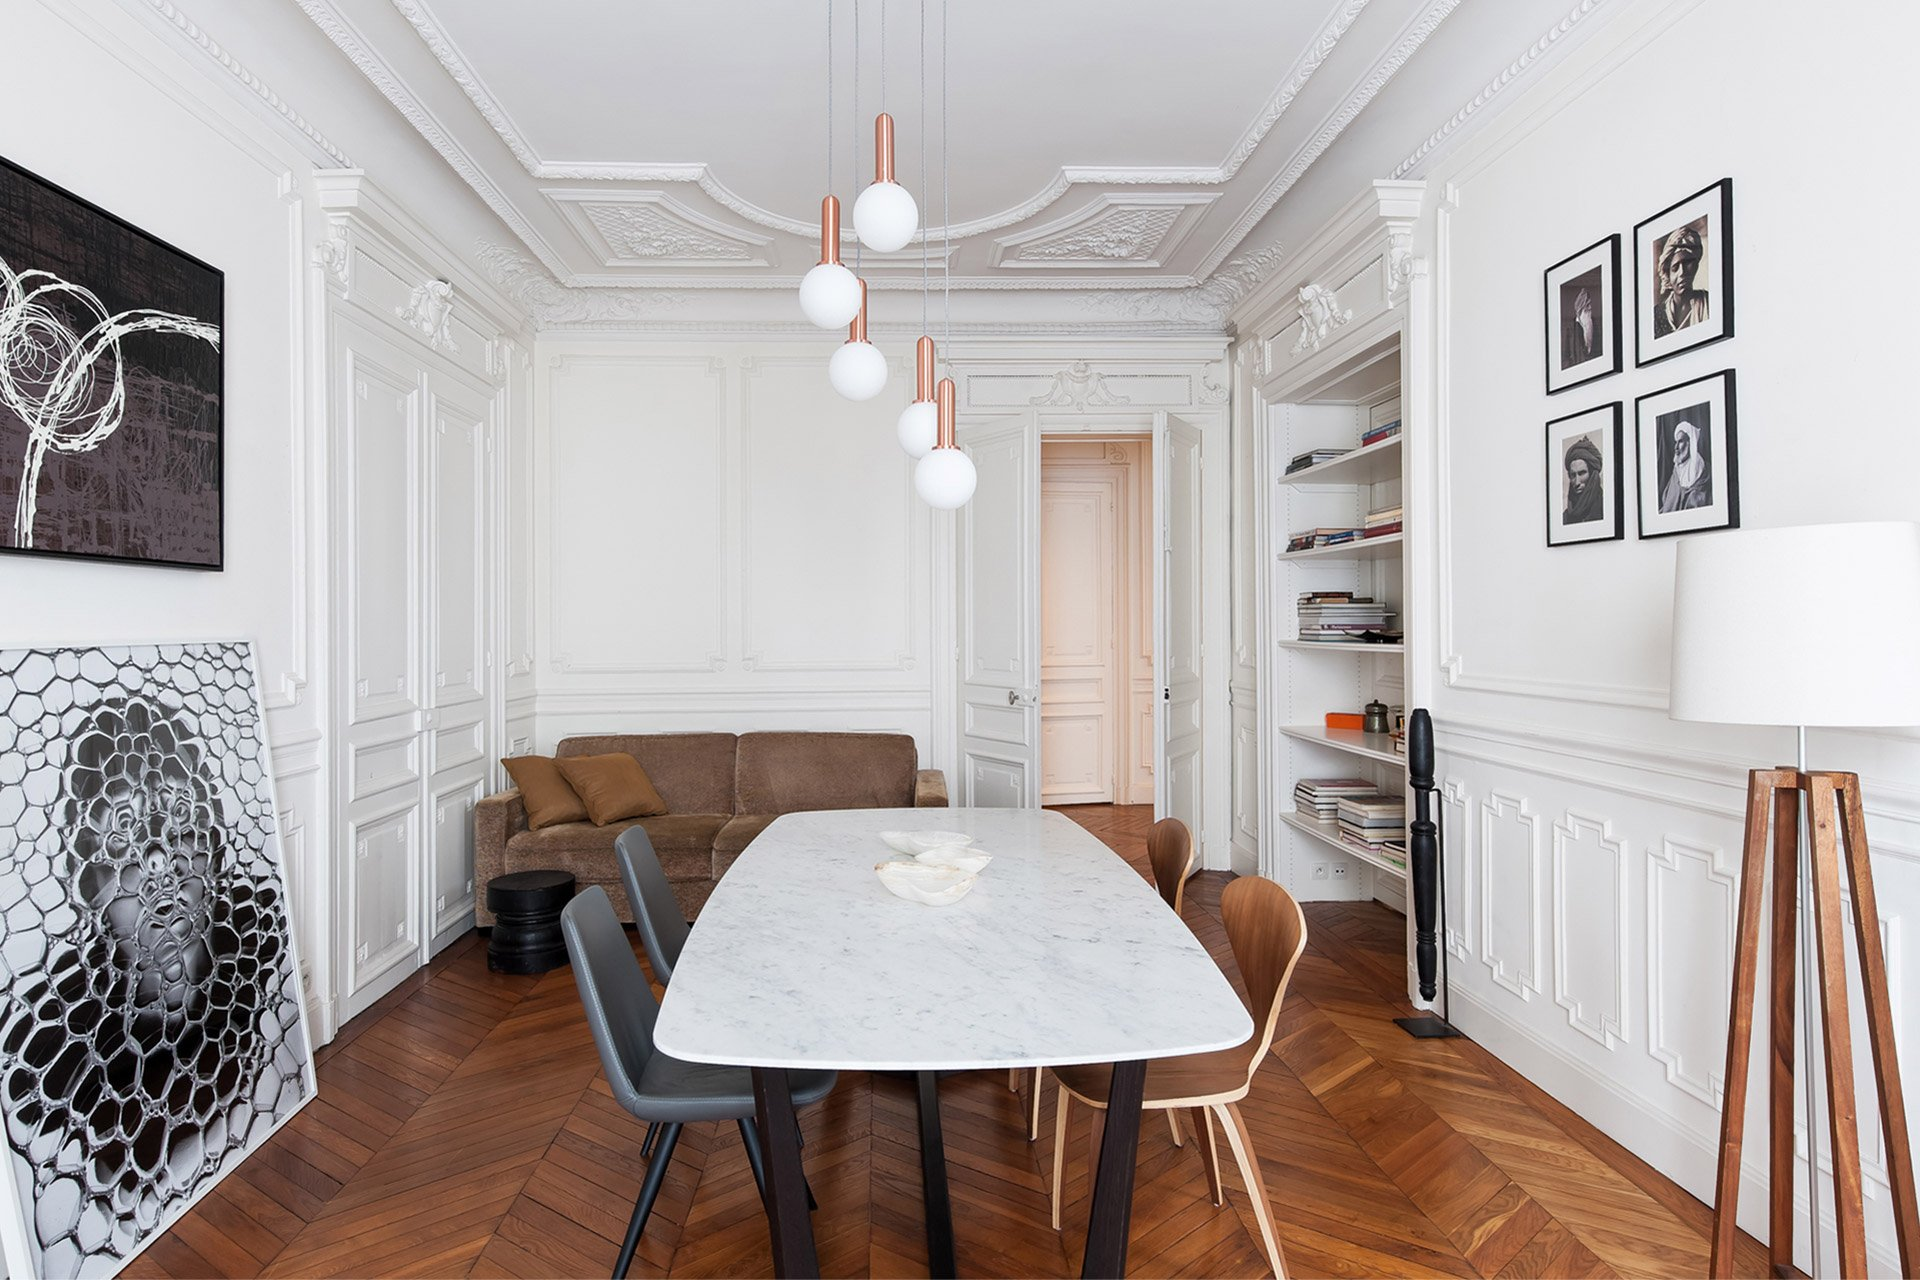 A Parisian dinner party waiting to happen in the Cavailles Paris Perfect rental